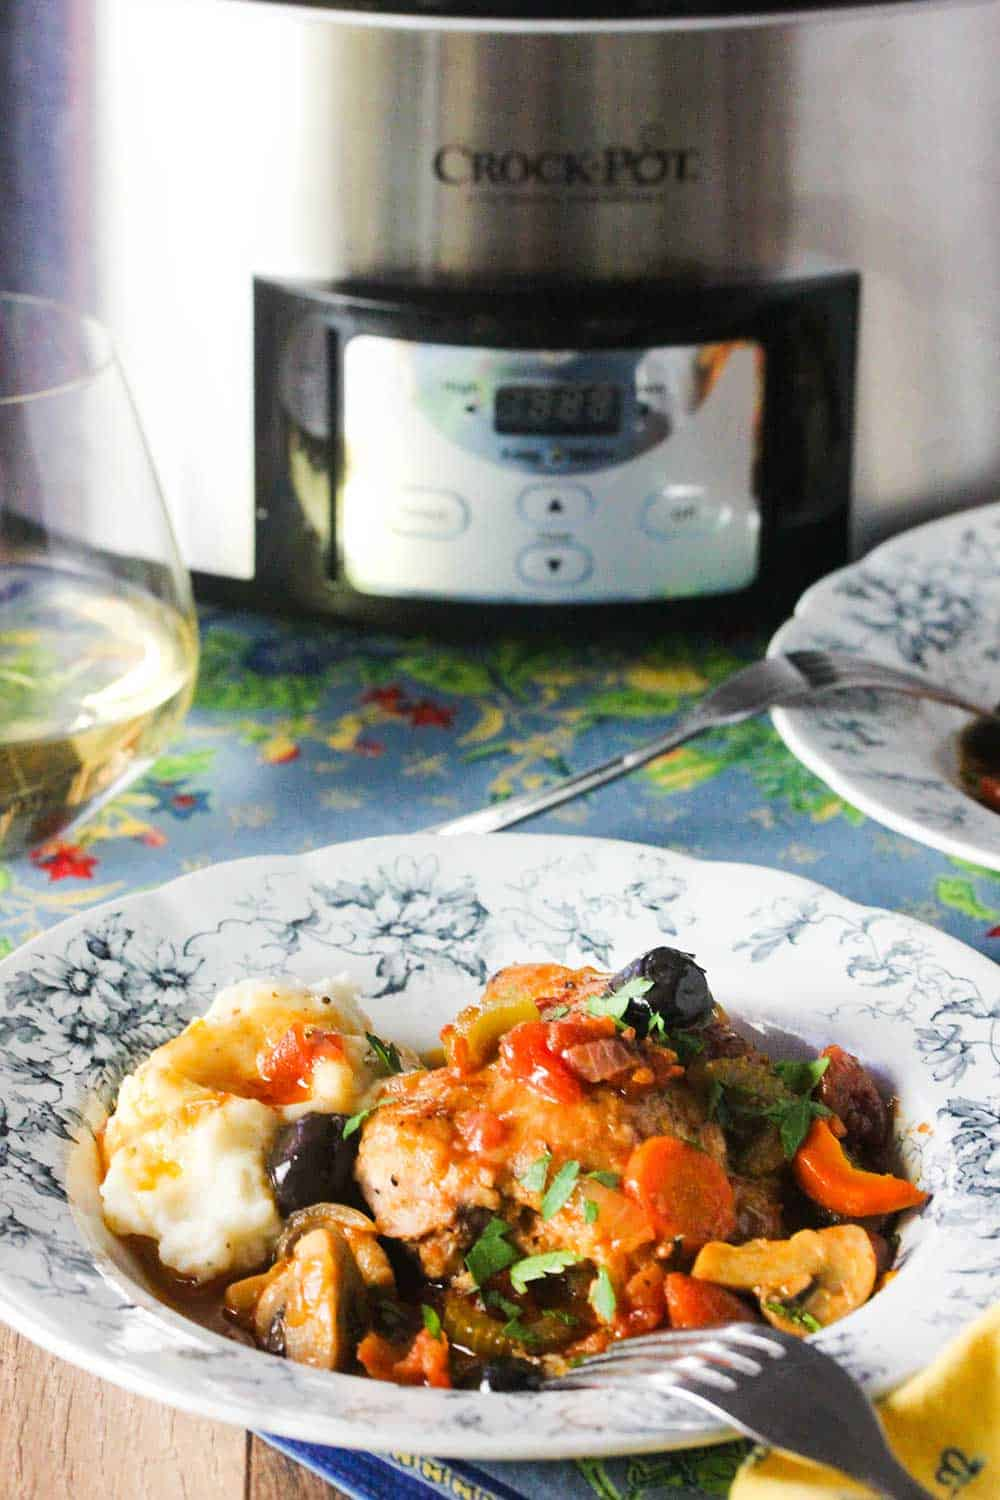 A small bowl of Provençal Chicken Stew in front of a stainless steel Crock-Pot.